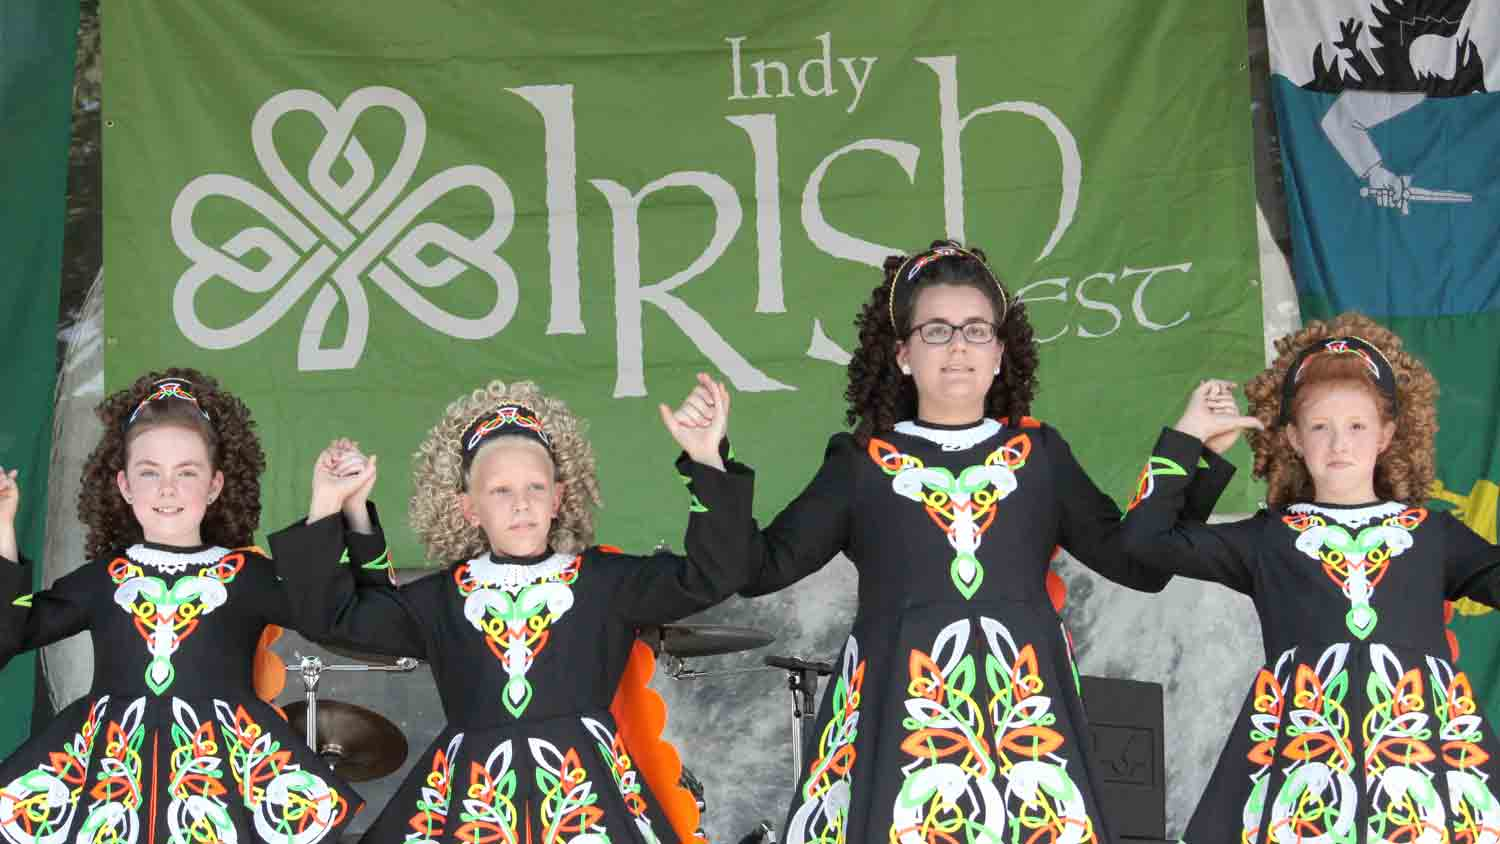 Indy Irish Fest 2